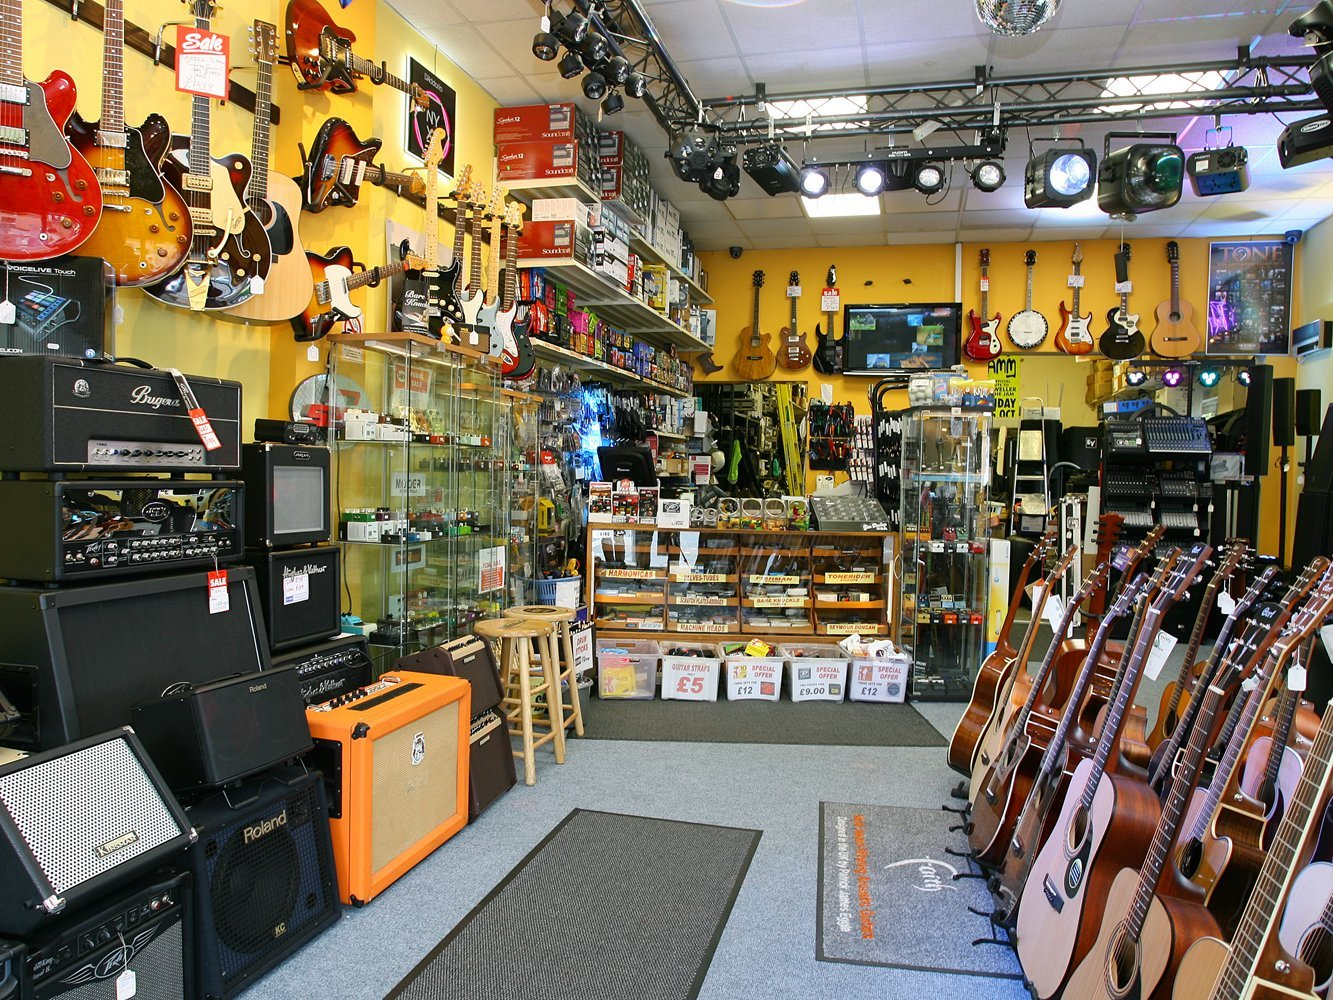 a wide range of musical instruments